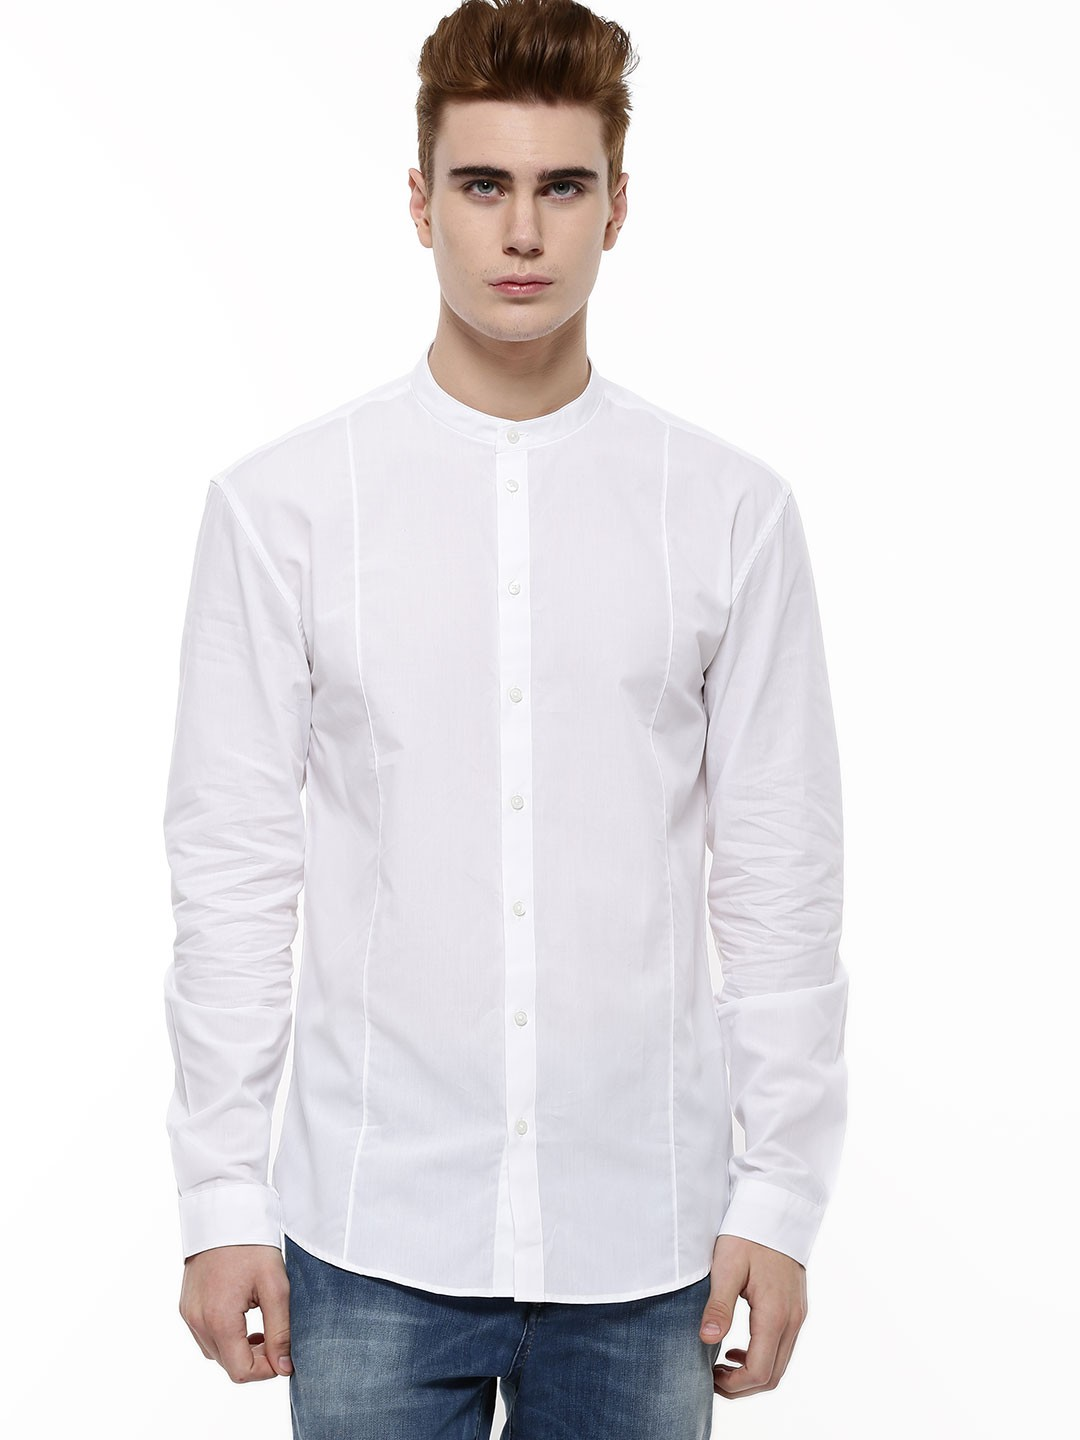 Collarless Shirts For Mens Online | Artee Shirt